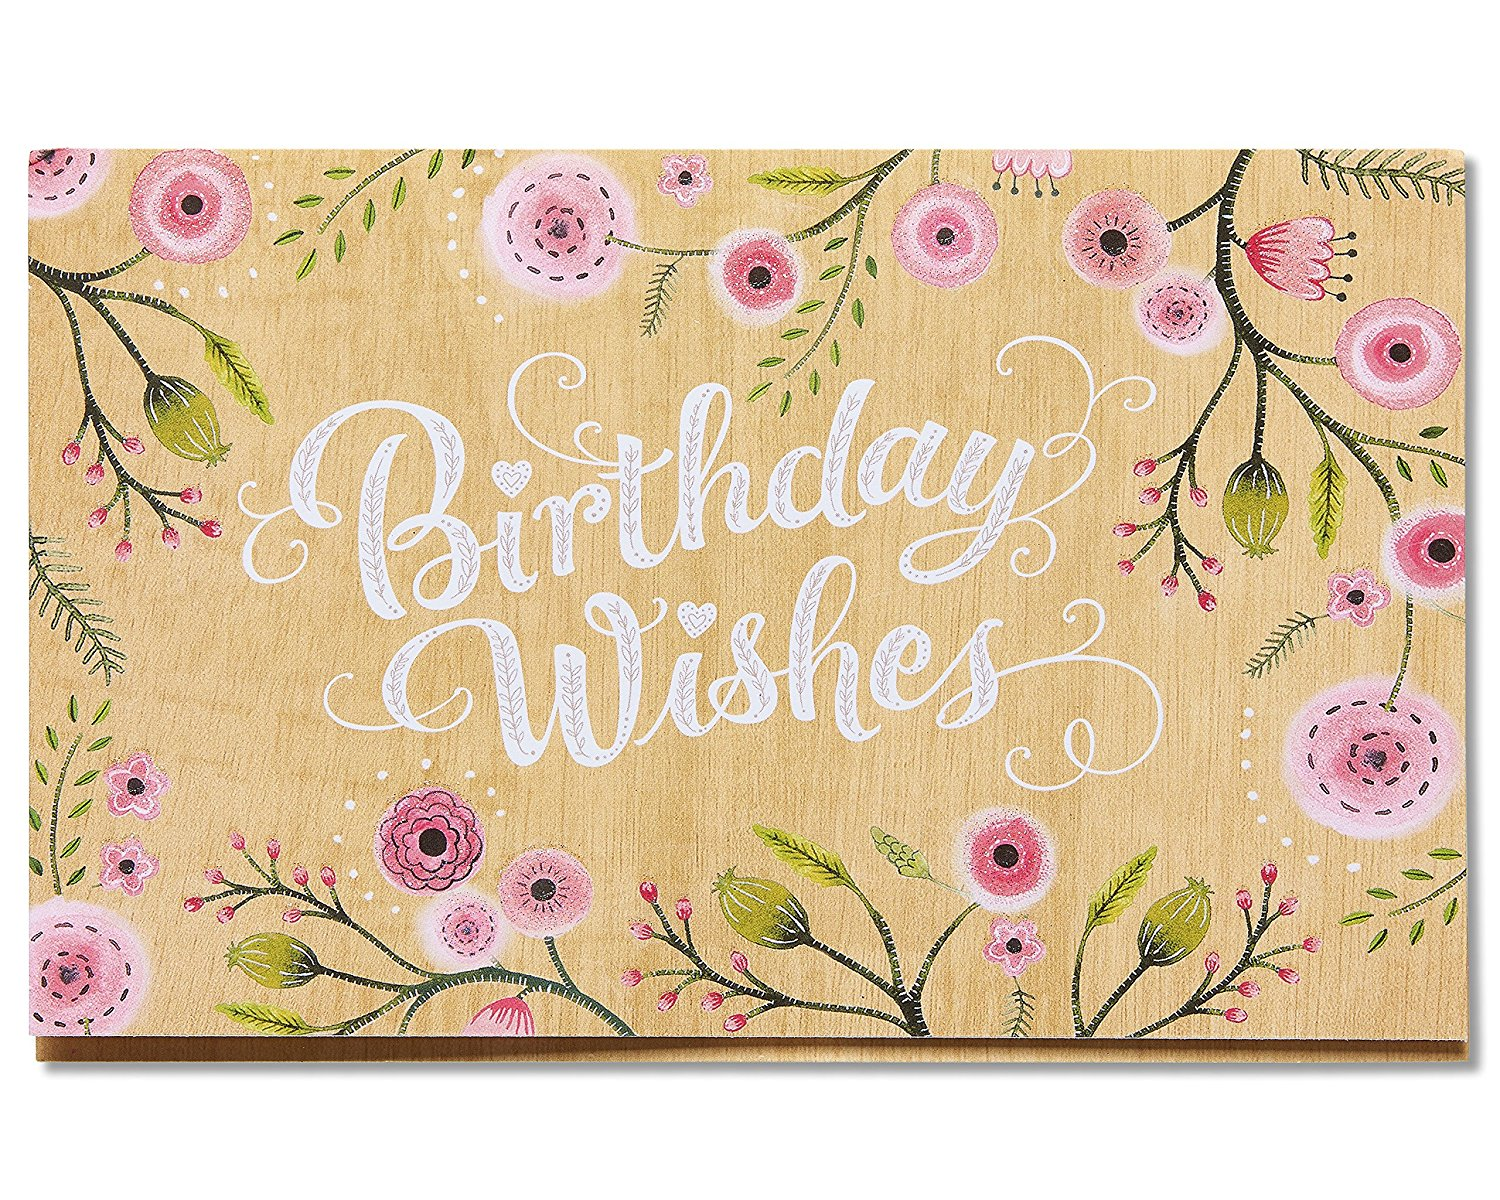 Buy american greetings birthday wishes birthday card with glitter in american greetings birthday wishes birthday card with glitter m4hsunfo